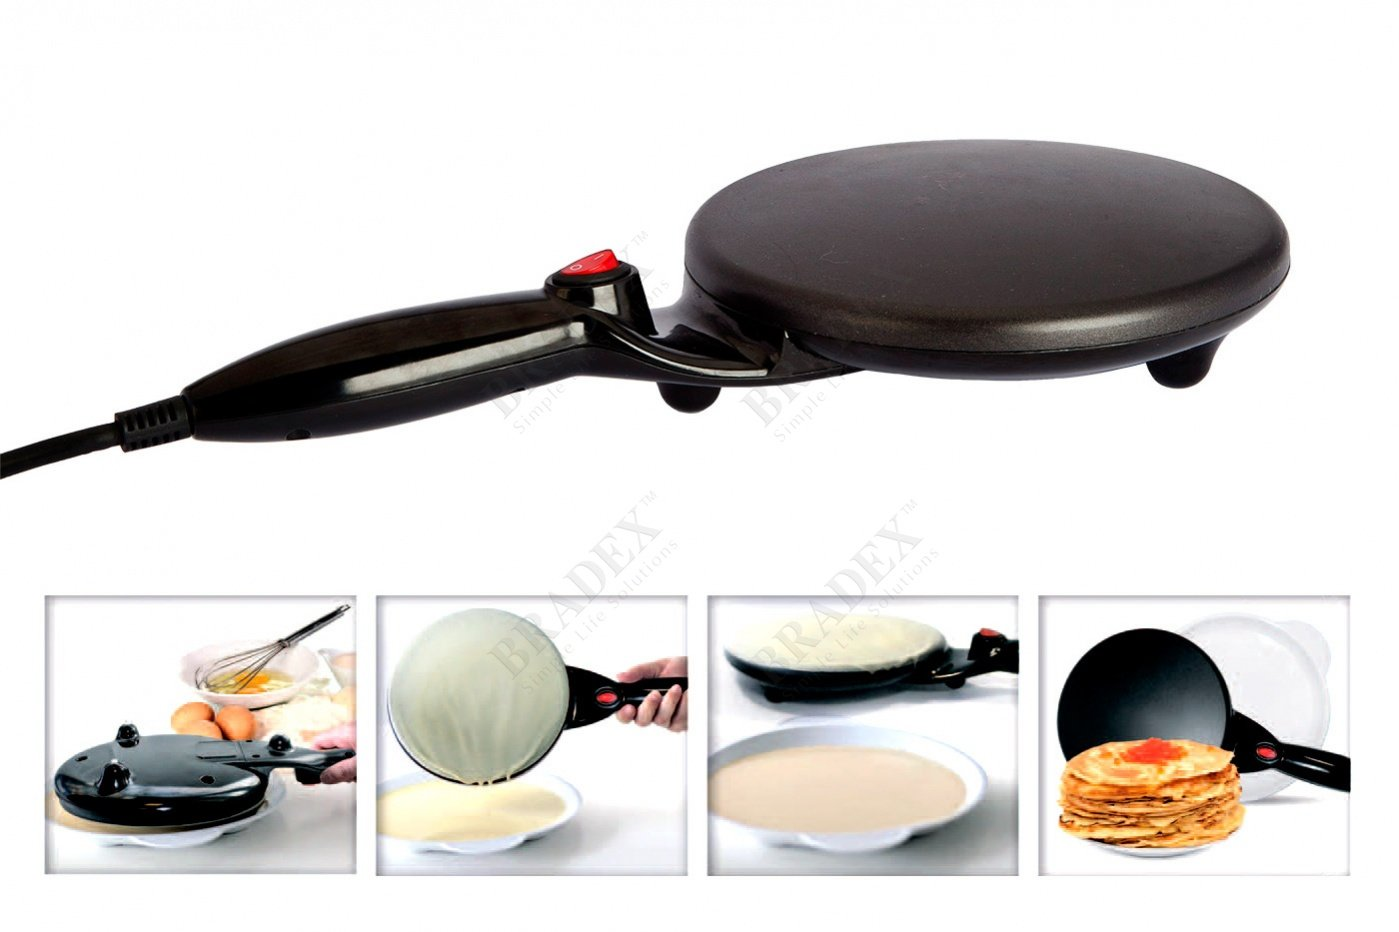 Bradex Crepes Electric Maker Griddle Non-stick Coating For Pancakes Blintzes Eggs & More 7.5inch with Container for the Dough (tk0237)